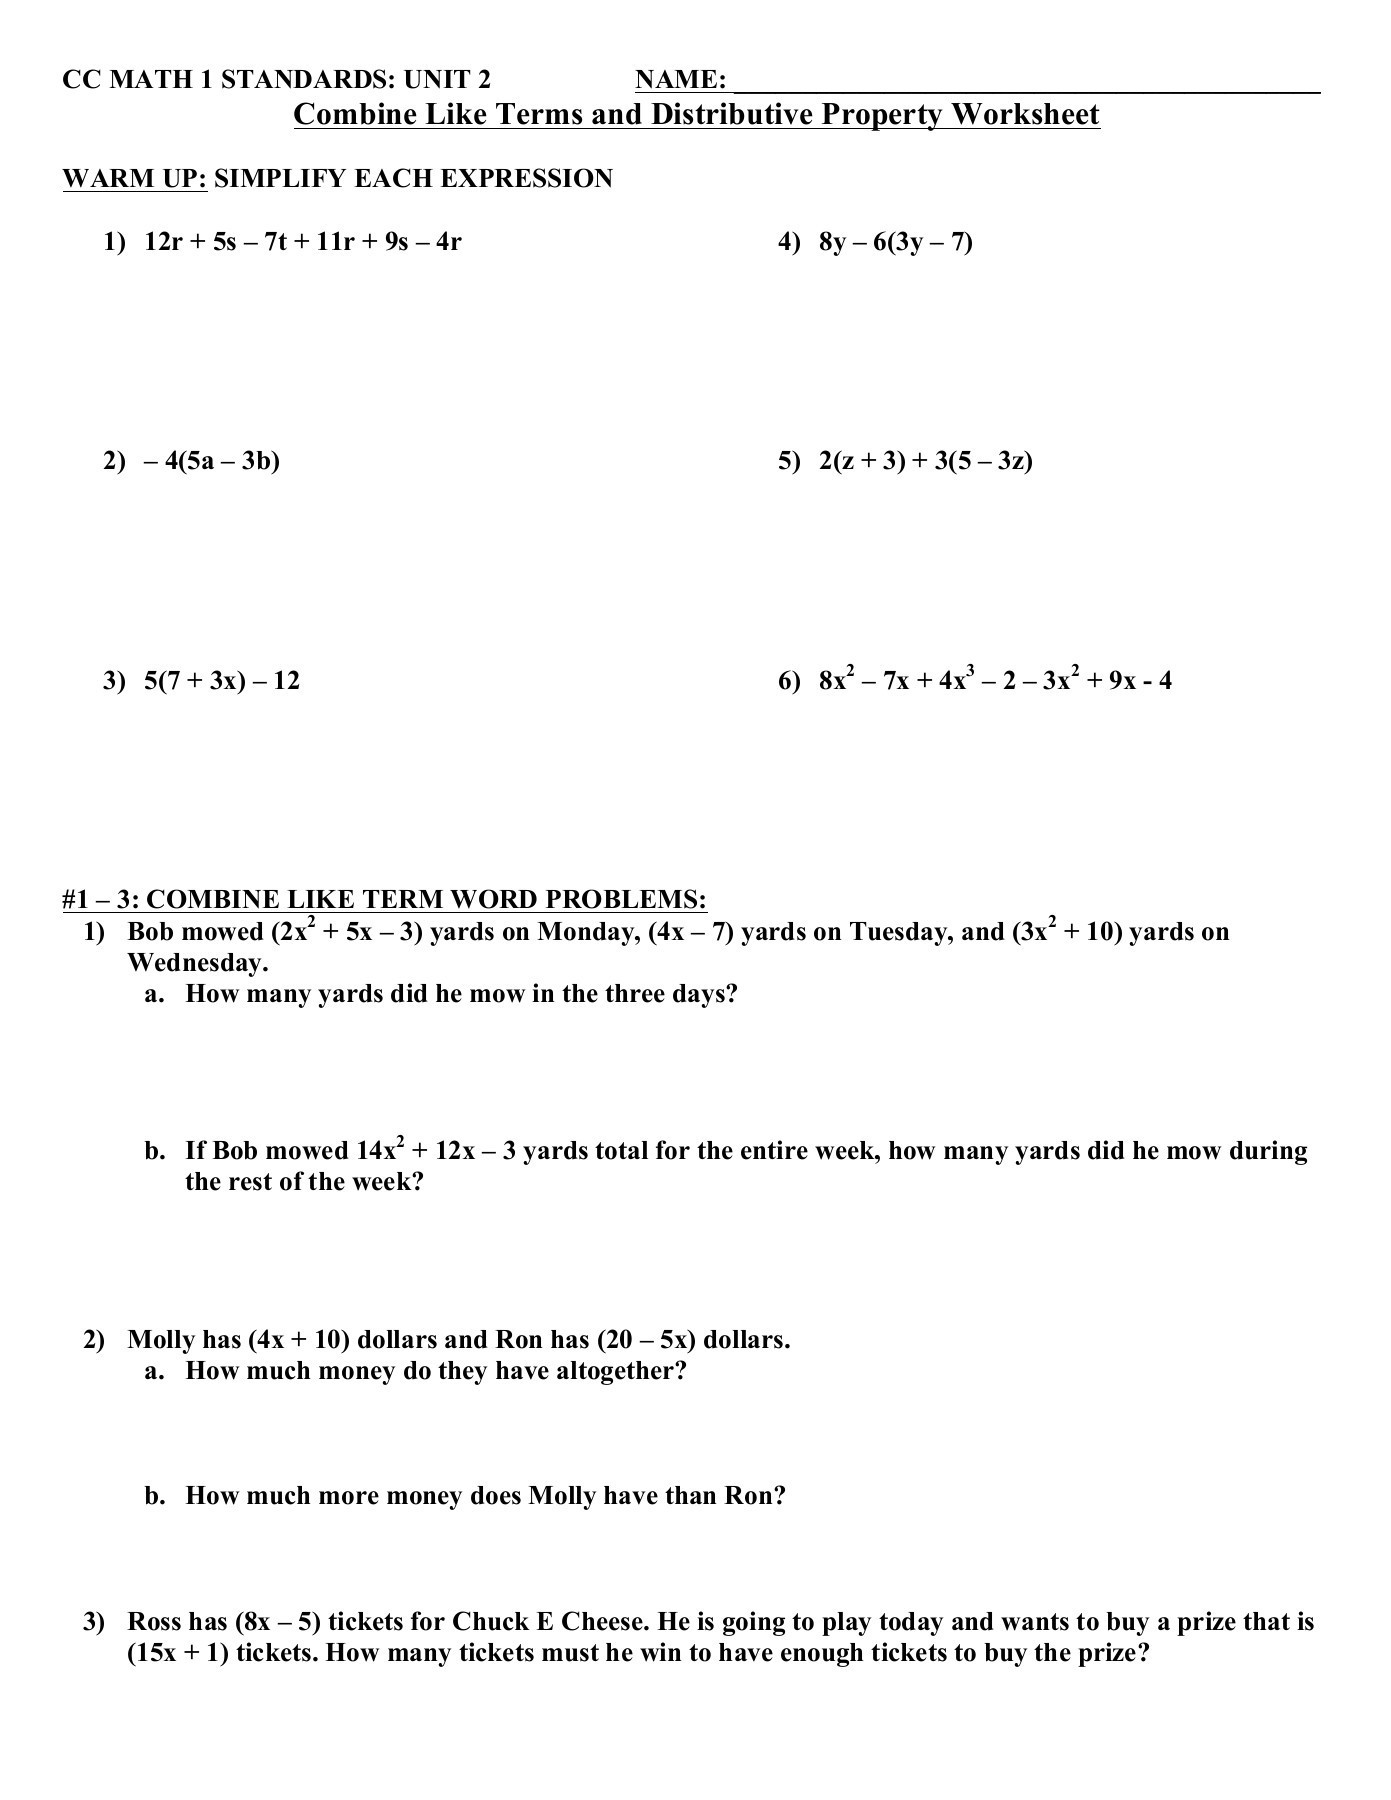 Combining Like Terms Worksheet Answers Bine Like Terms and Distributive Property Worksheet Pages